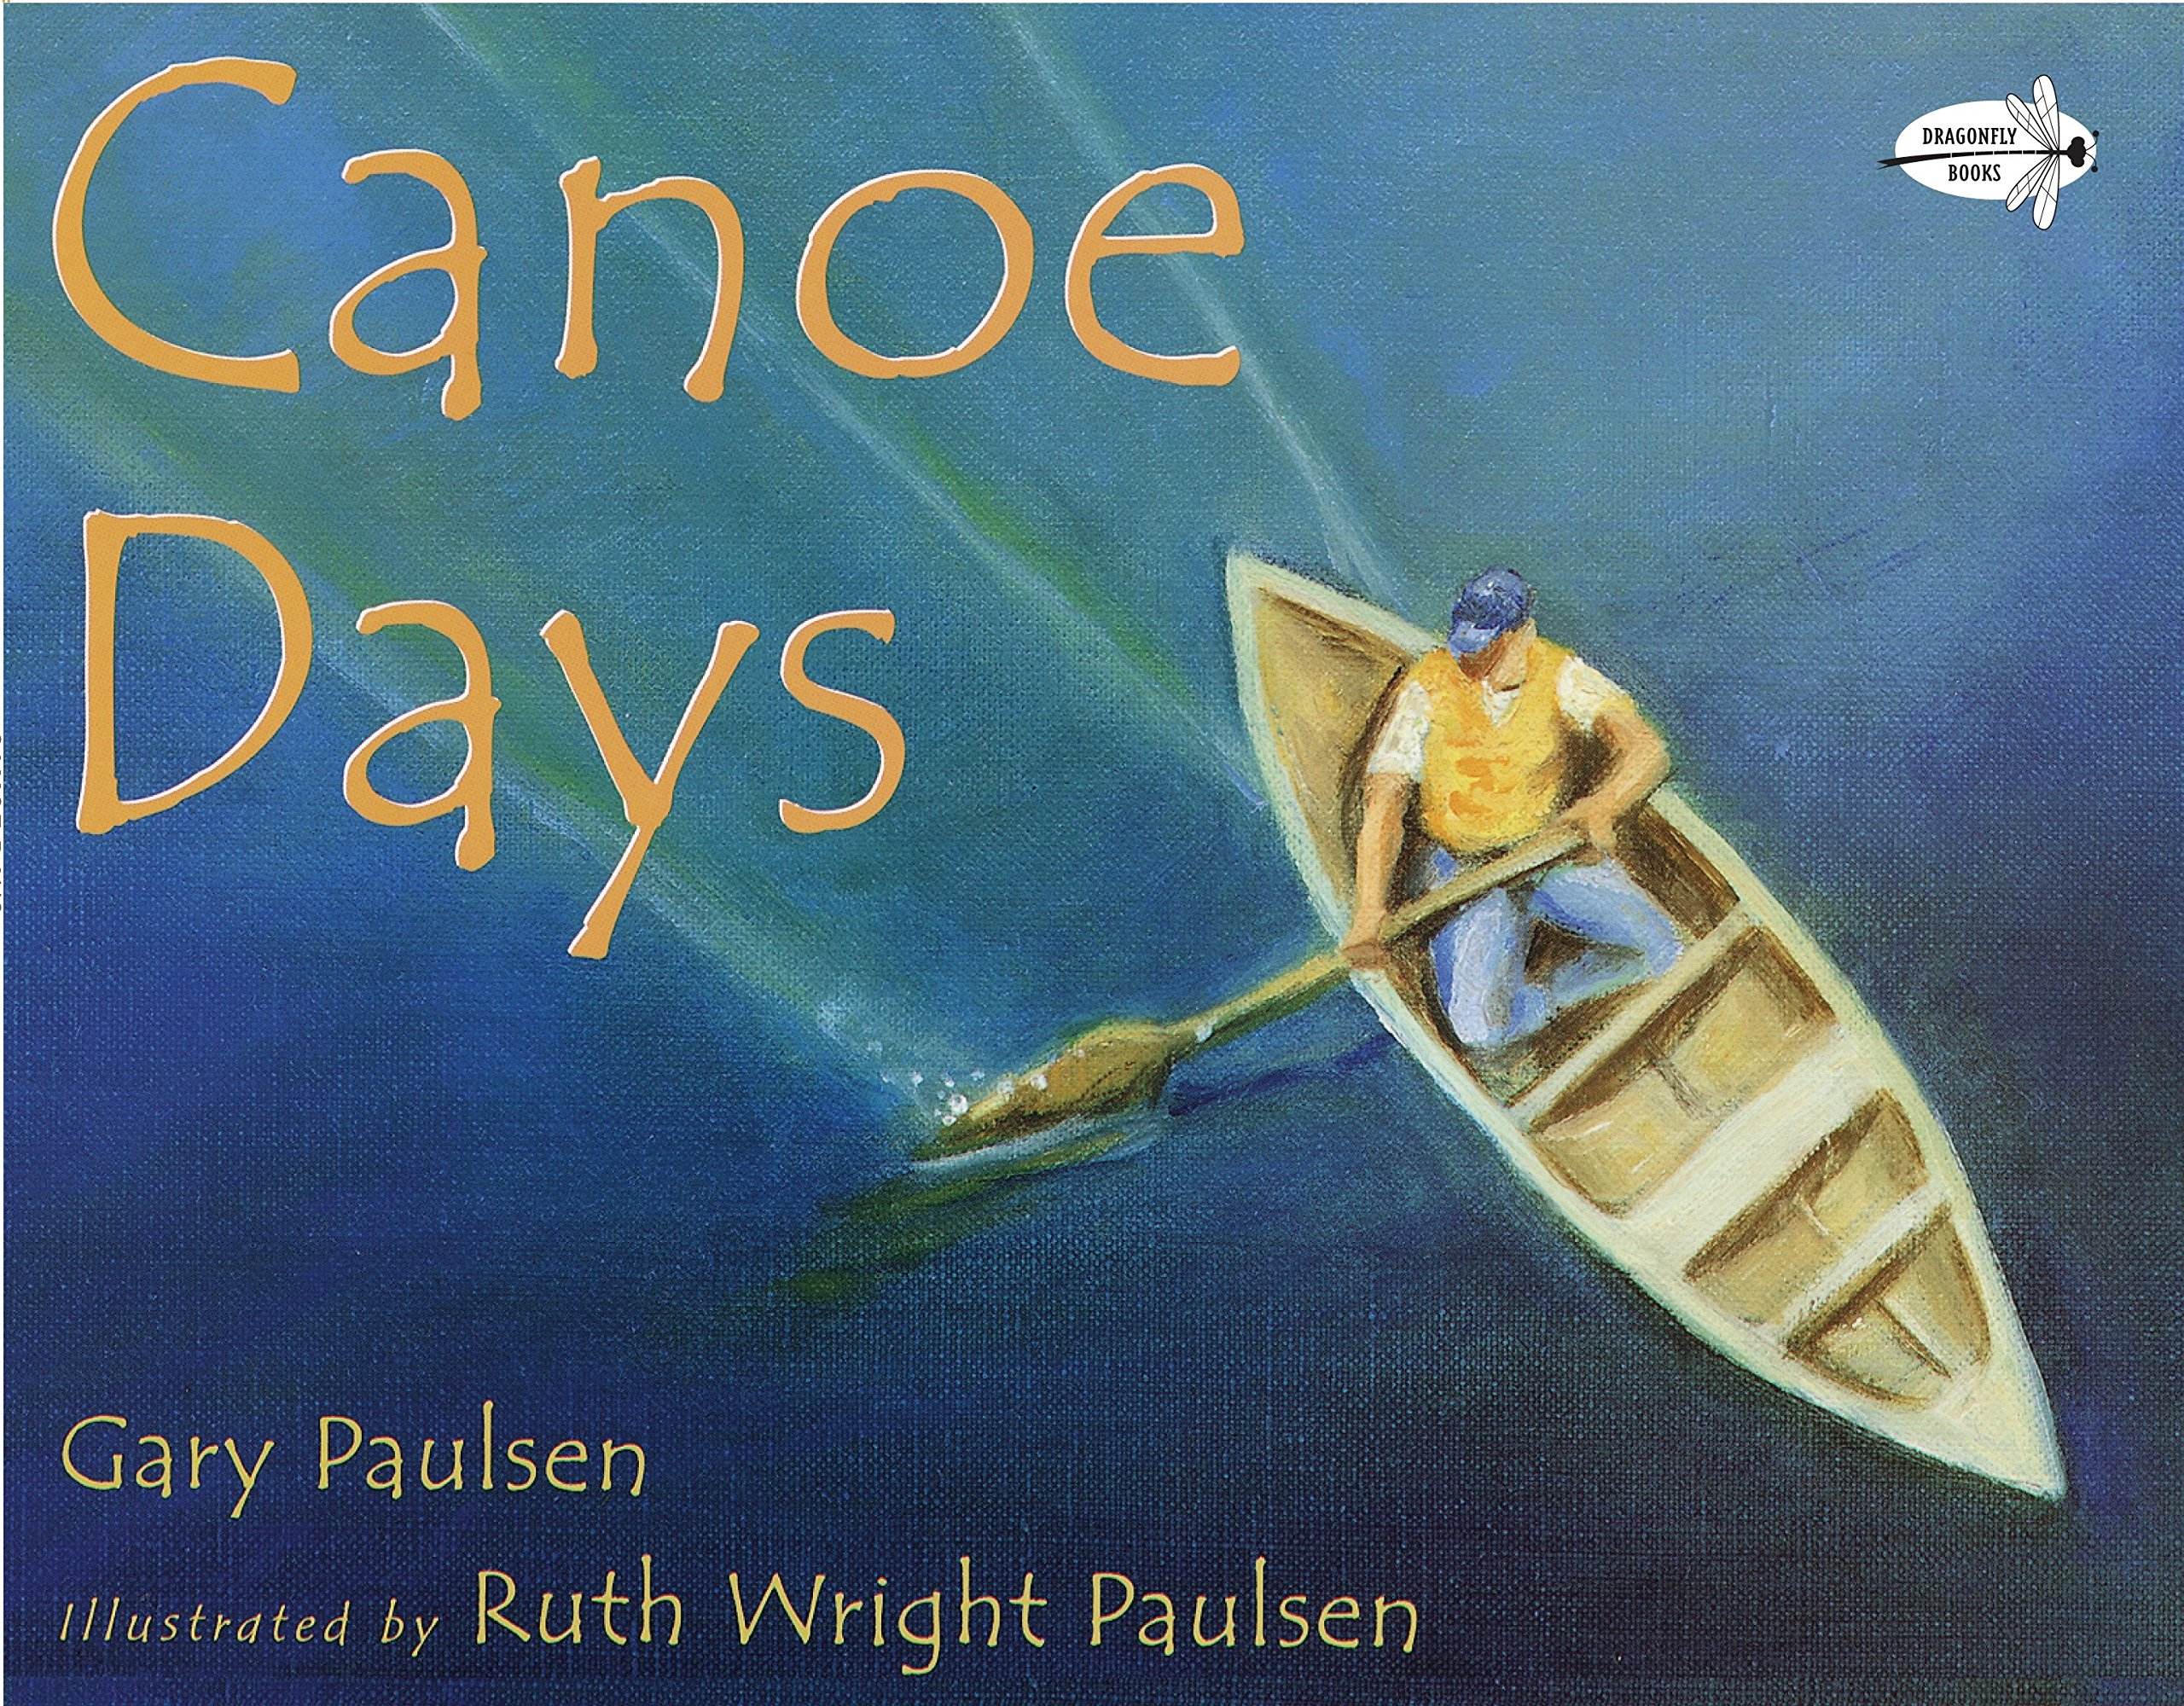 Canoe Days Paperback – June 12, 2001 Gary Paulsen Ruth Wright Paulsen Dragonfly Books 0440414415